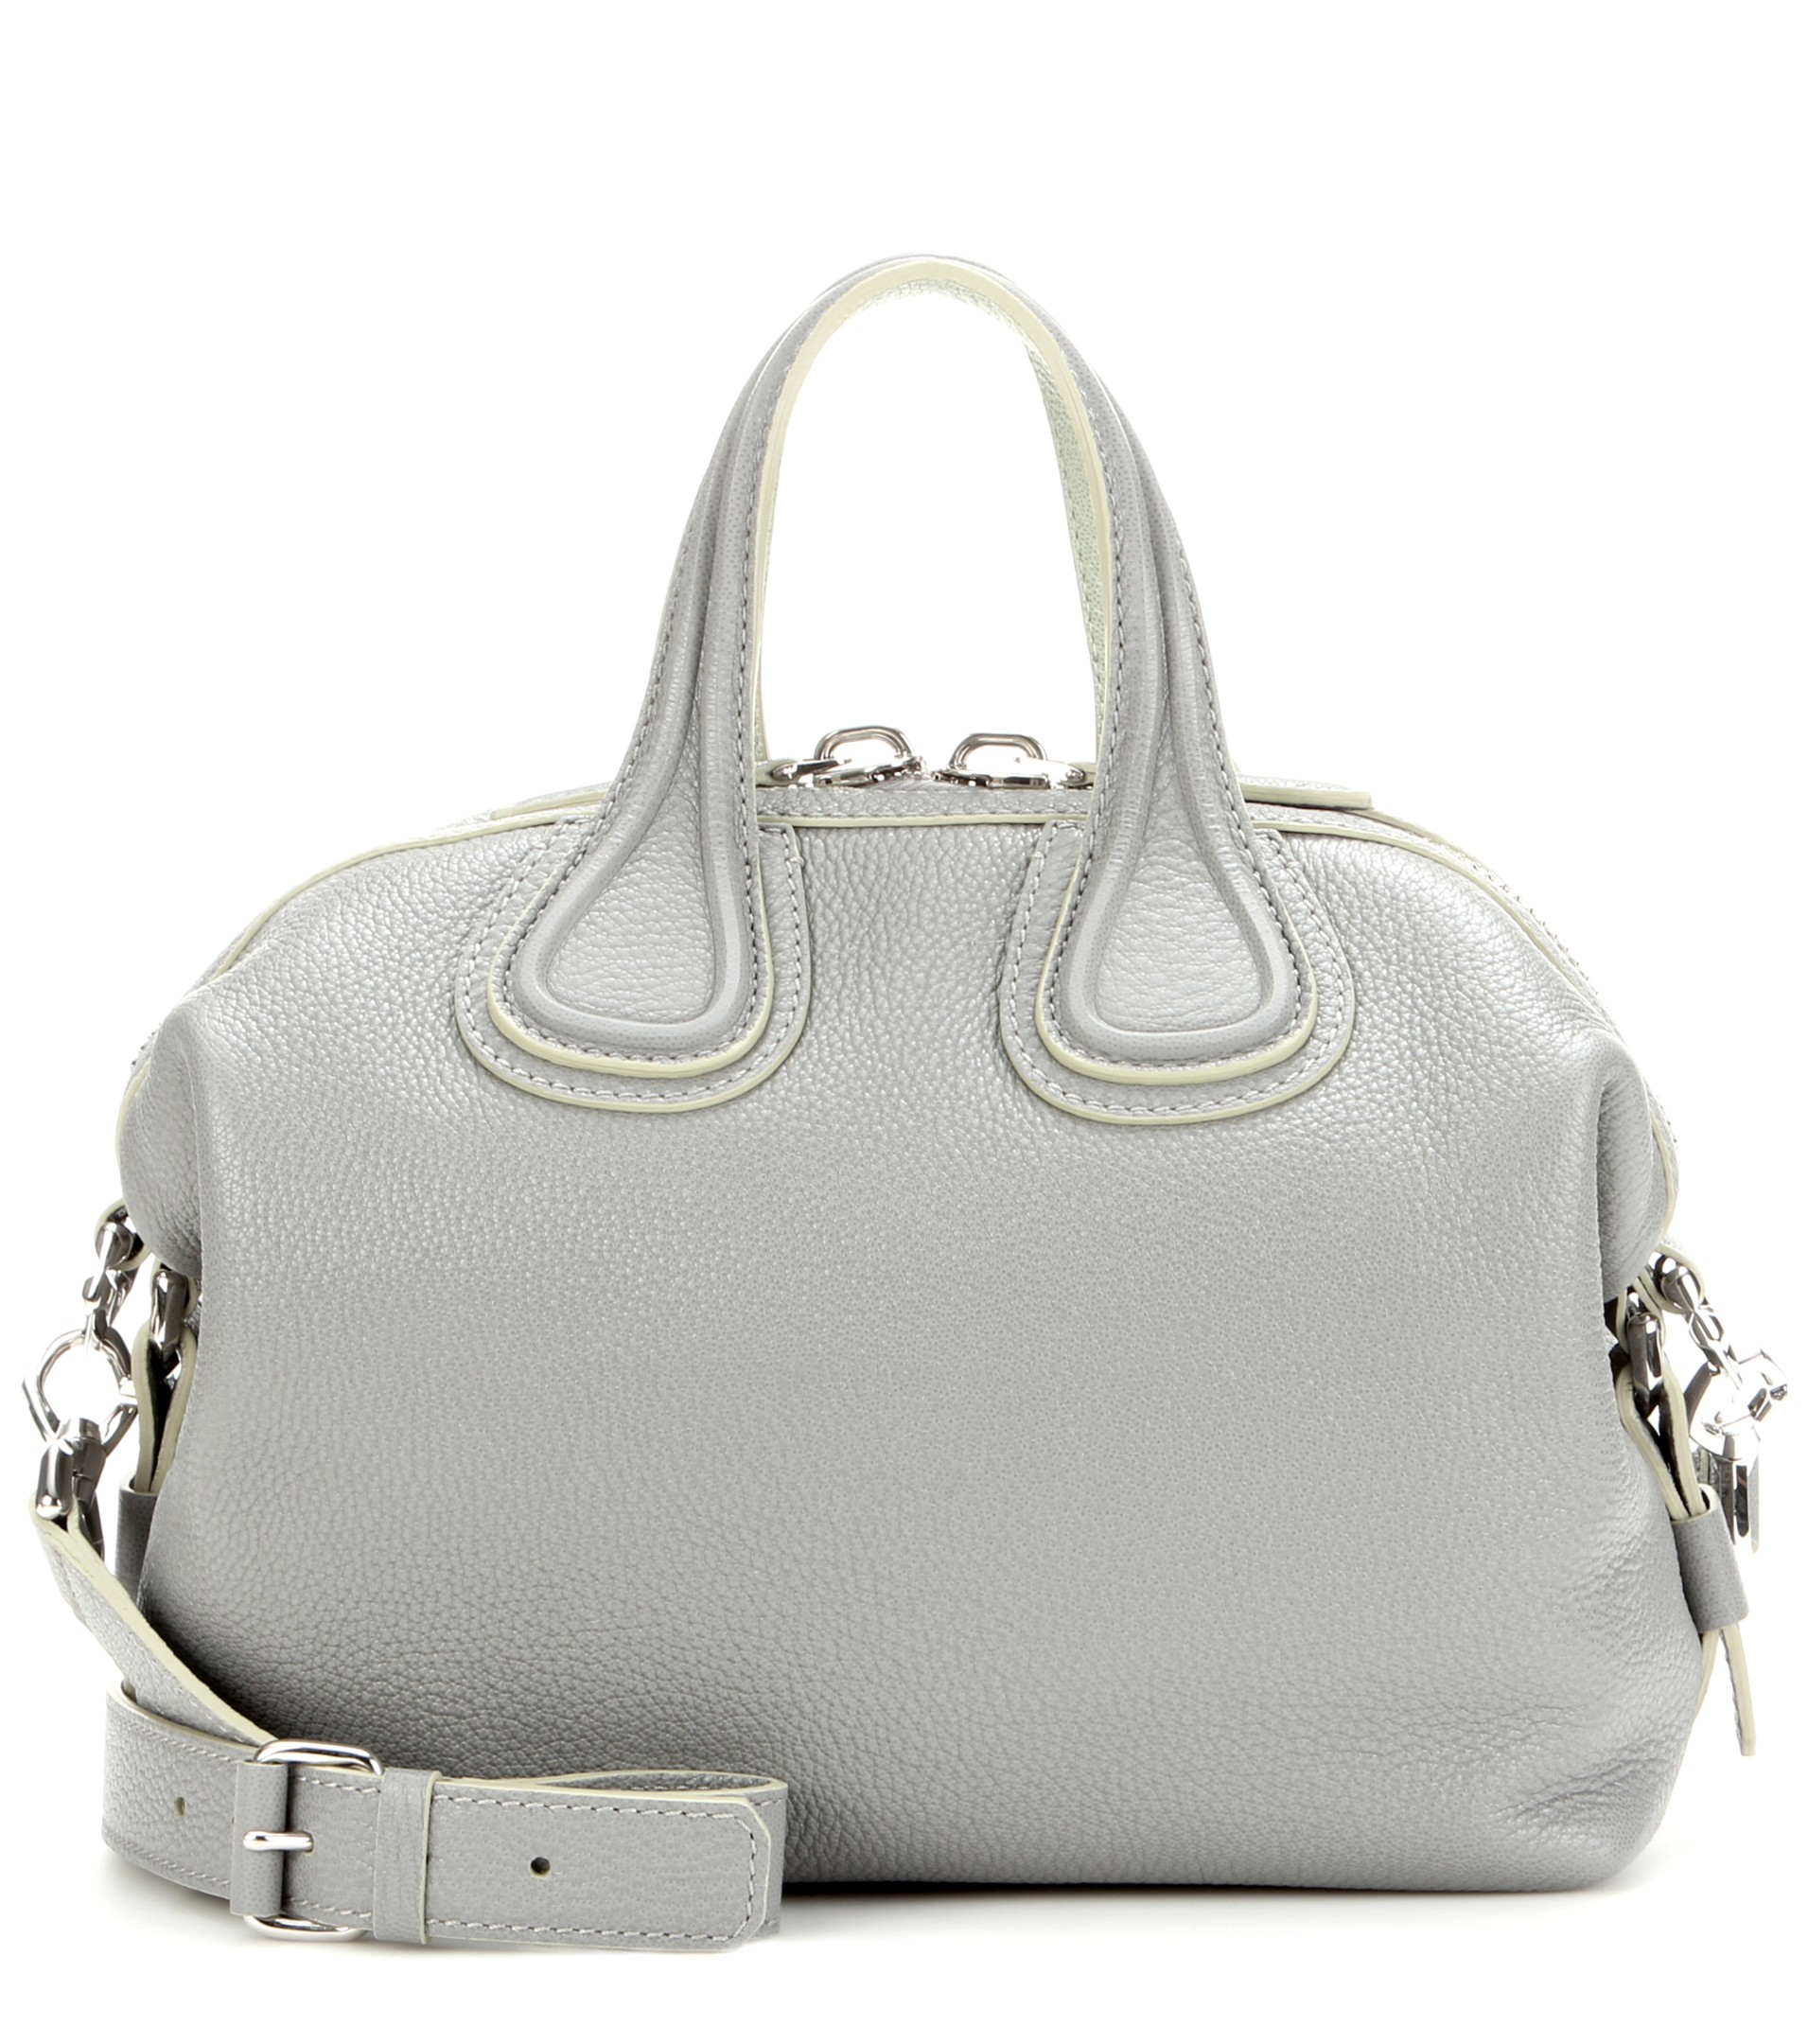 5ae142098f87 Lyst - Givenchy Nightingale Small Leather Tote in Gray